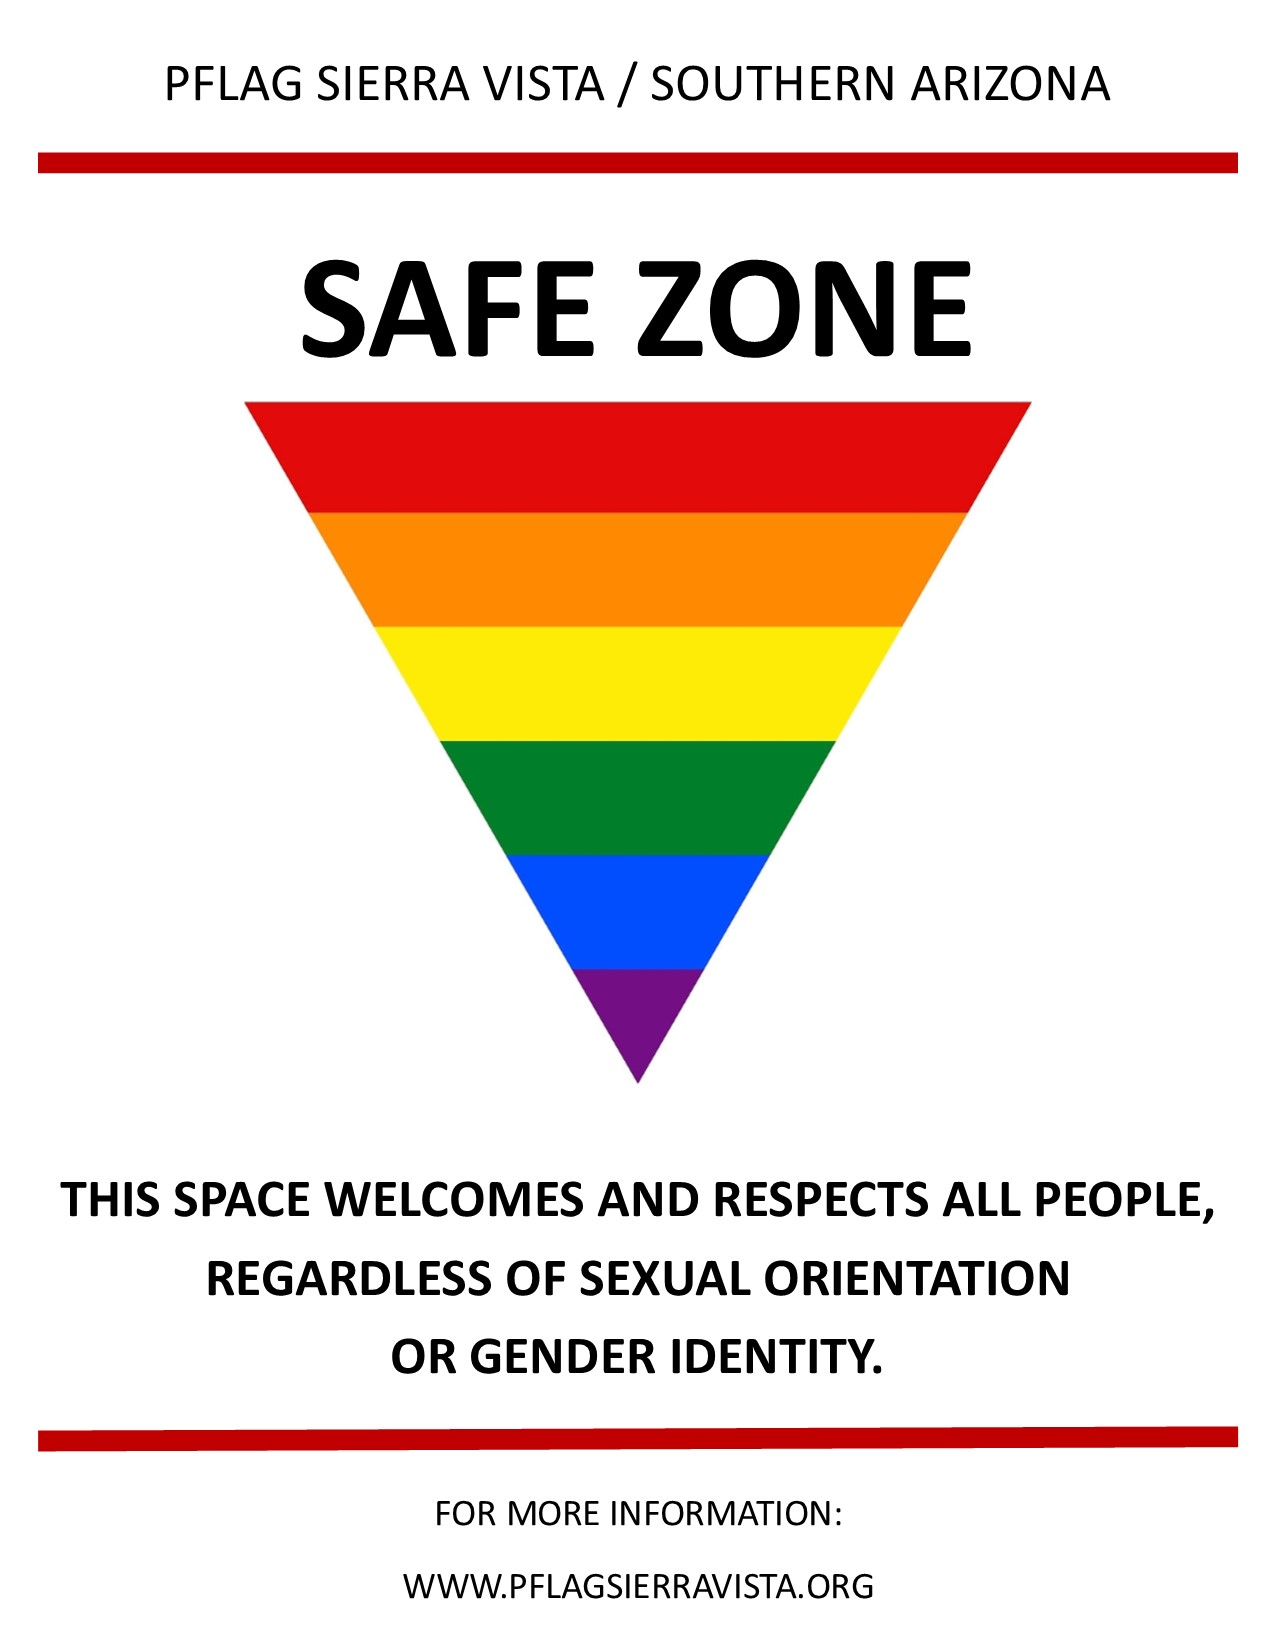 Safe Zones are places where diversity is celebrated!